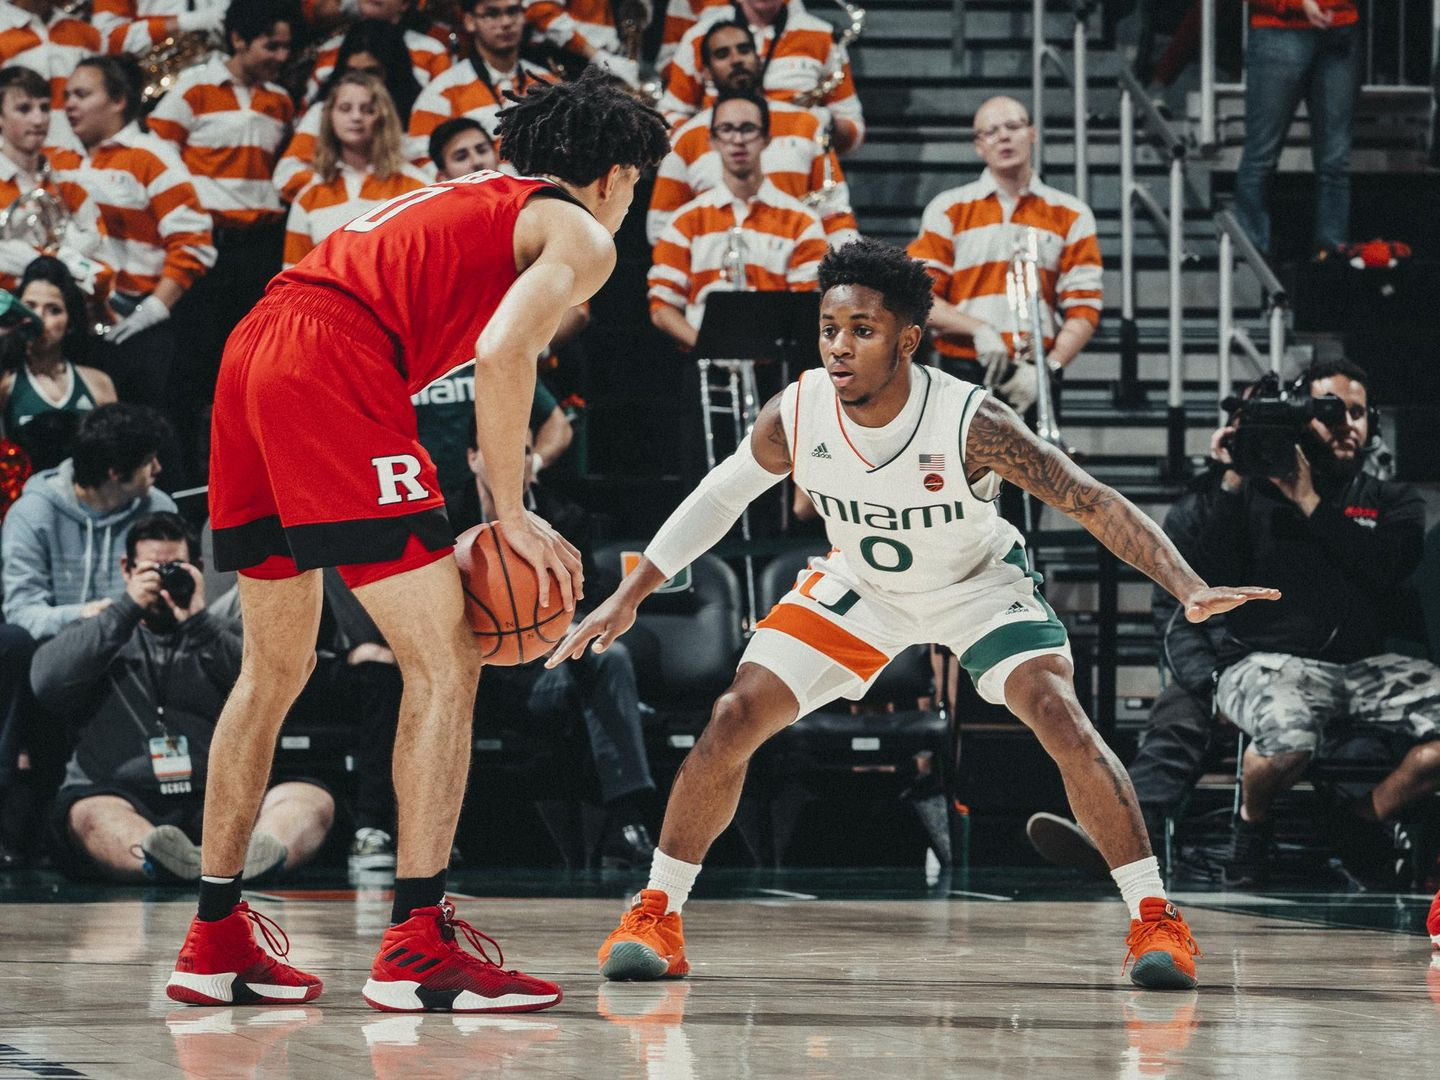 Canes Fall to Rutgers, 57-54